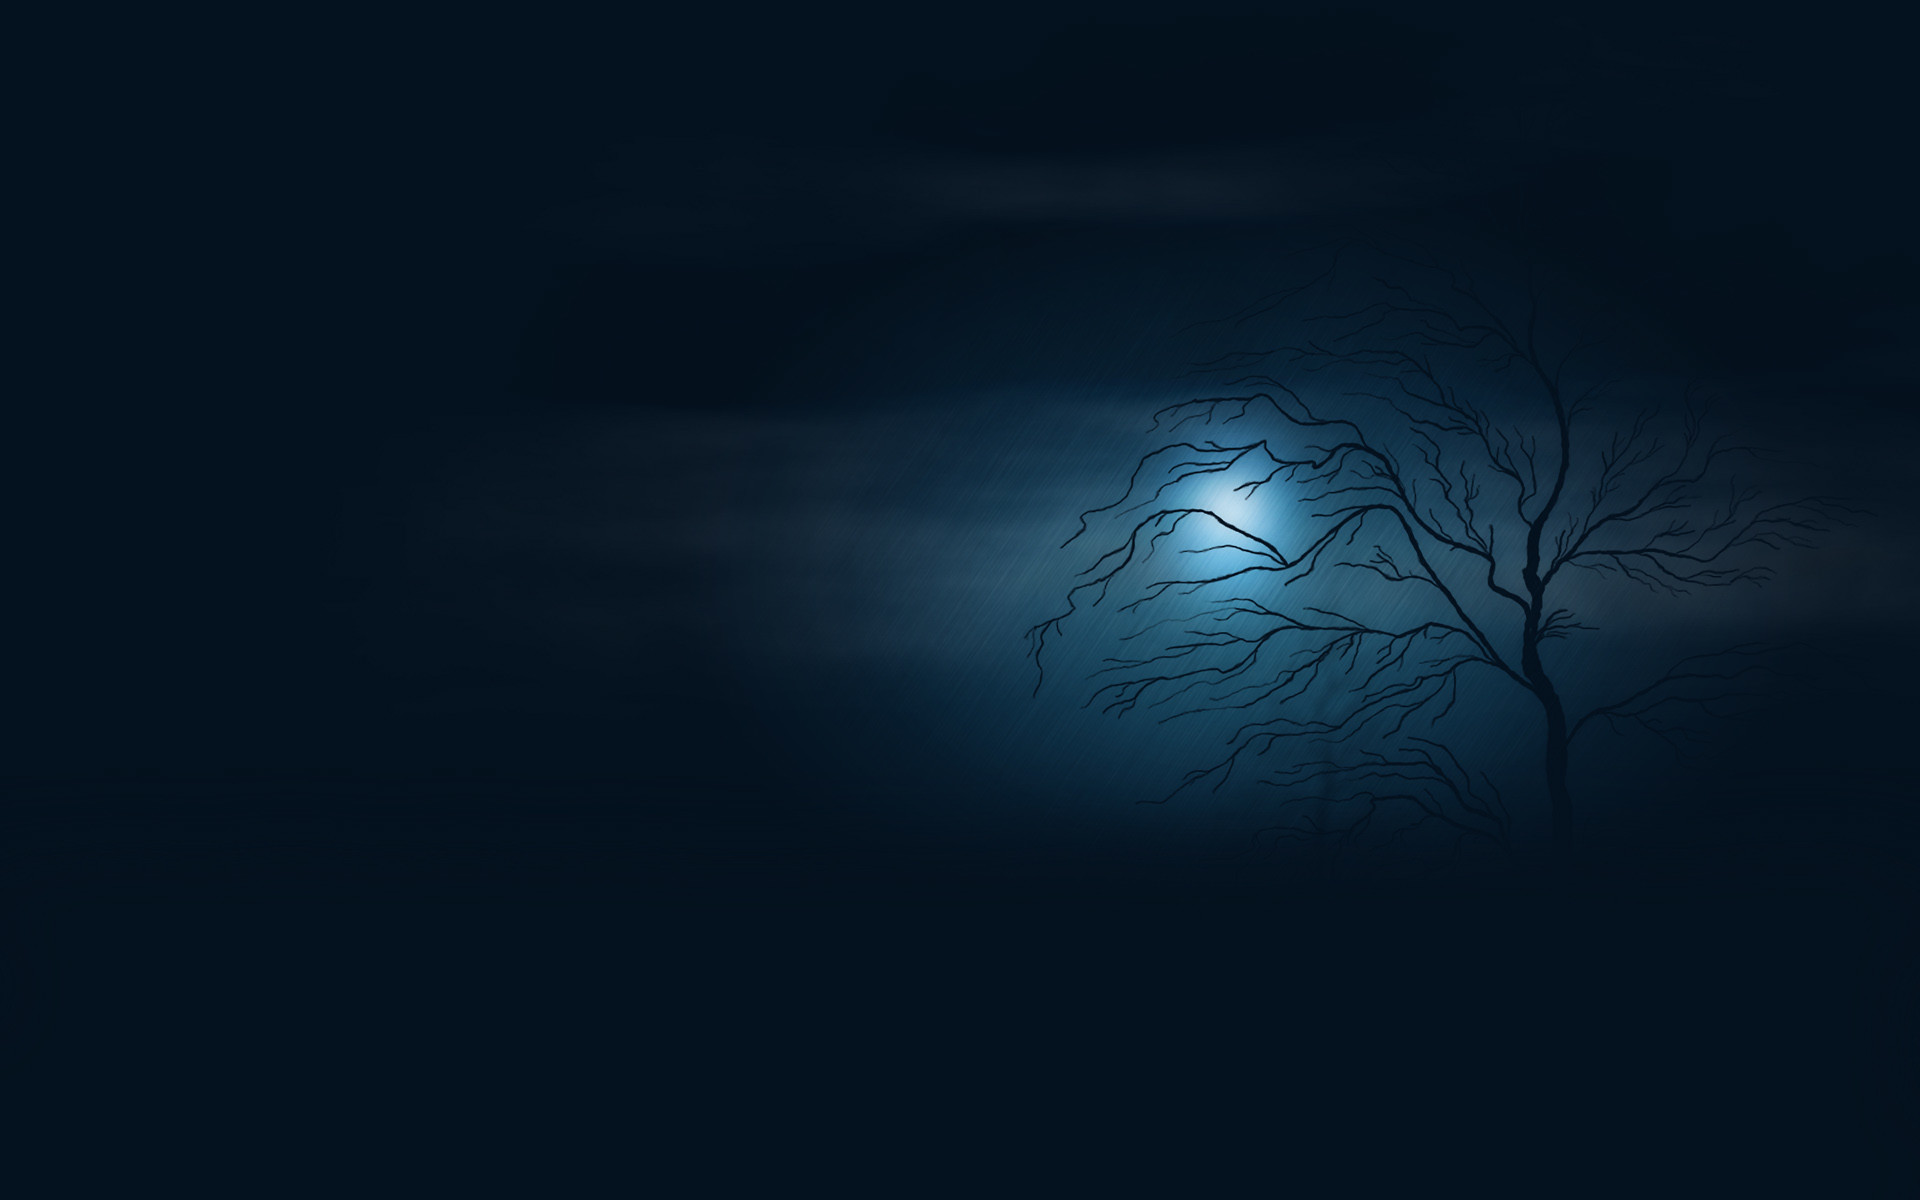 Night Backgrounds | HD Wallpapers | Pictures | Images | Backgrounds .